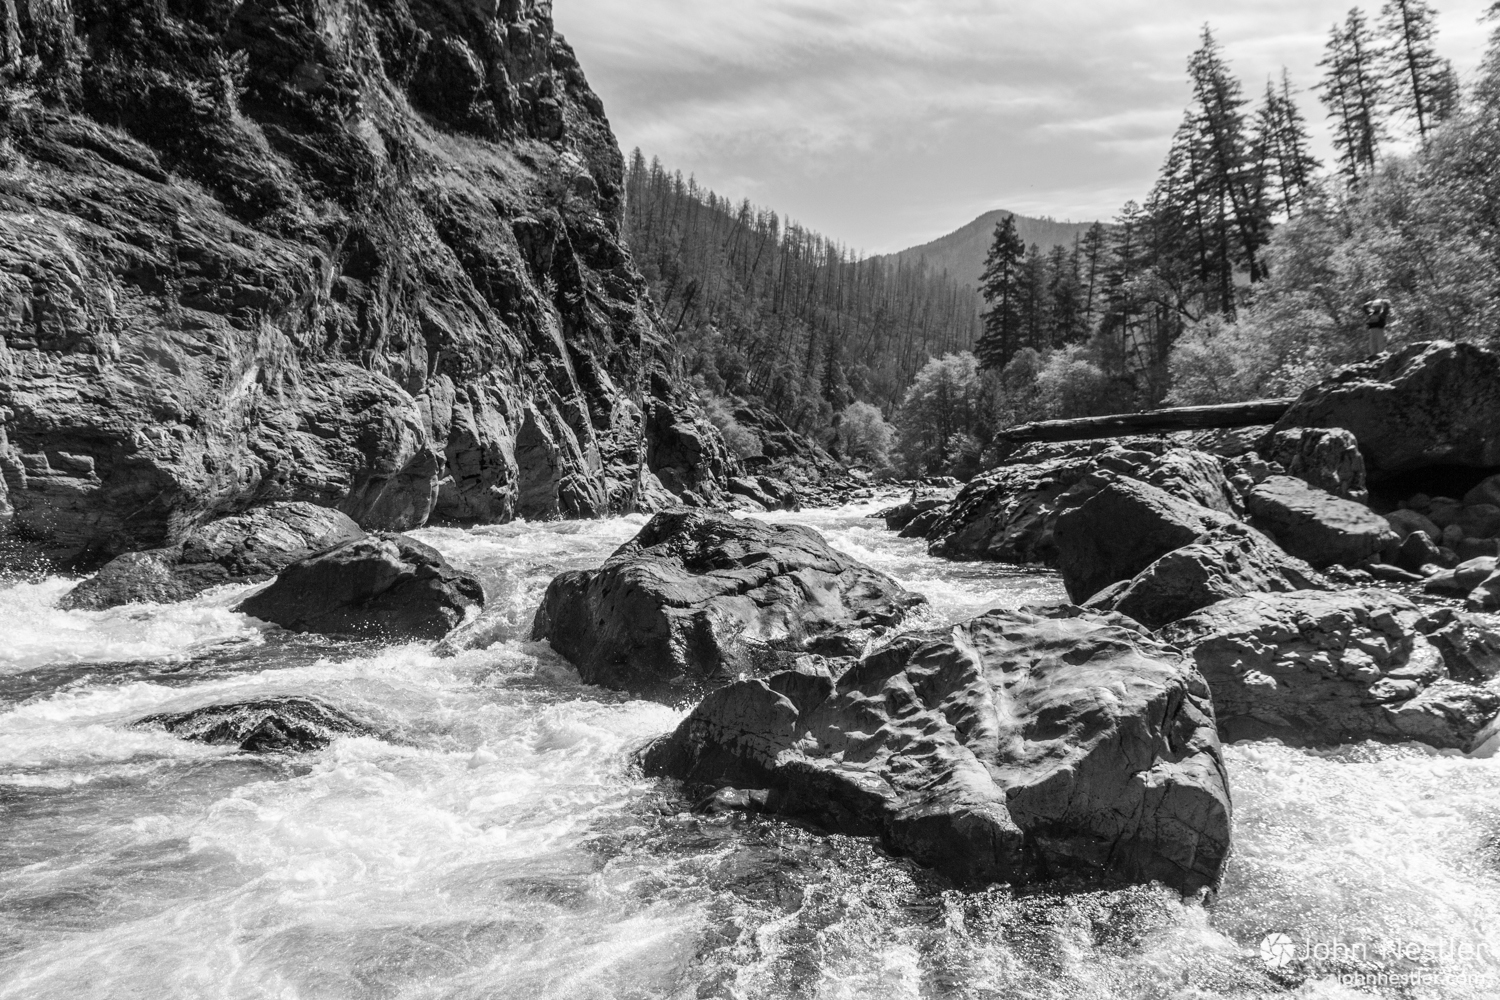 Boulders choke up the entrance drop to Green Wall at this level (around 800 cfs).